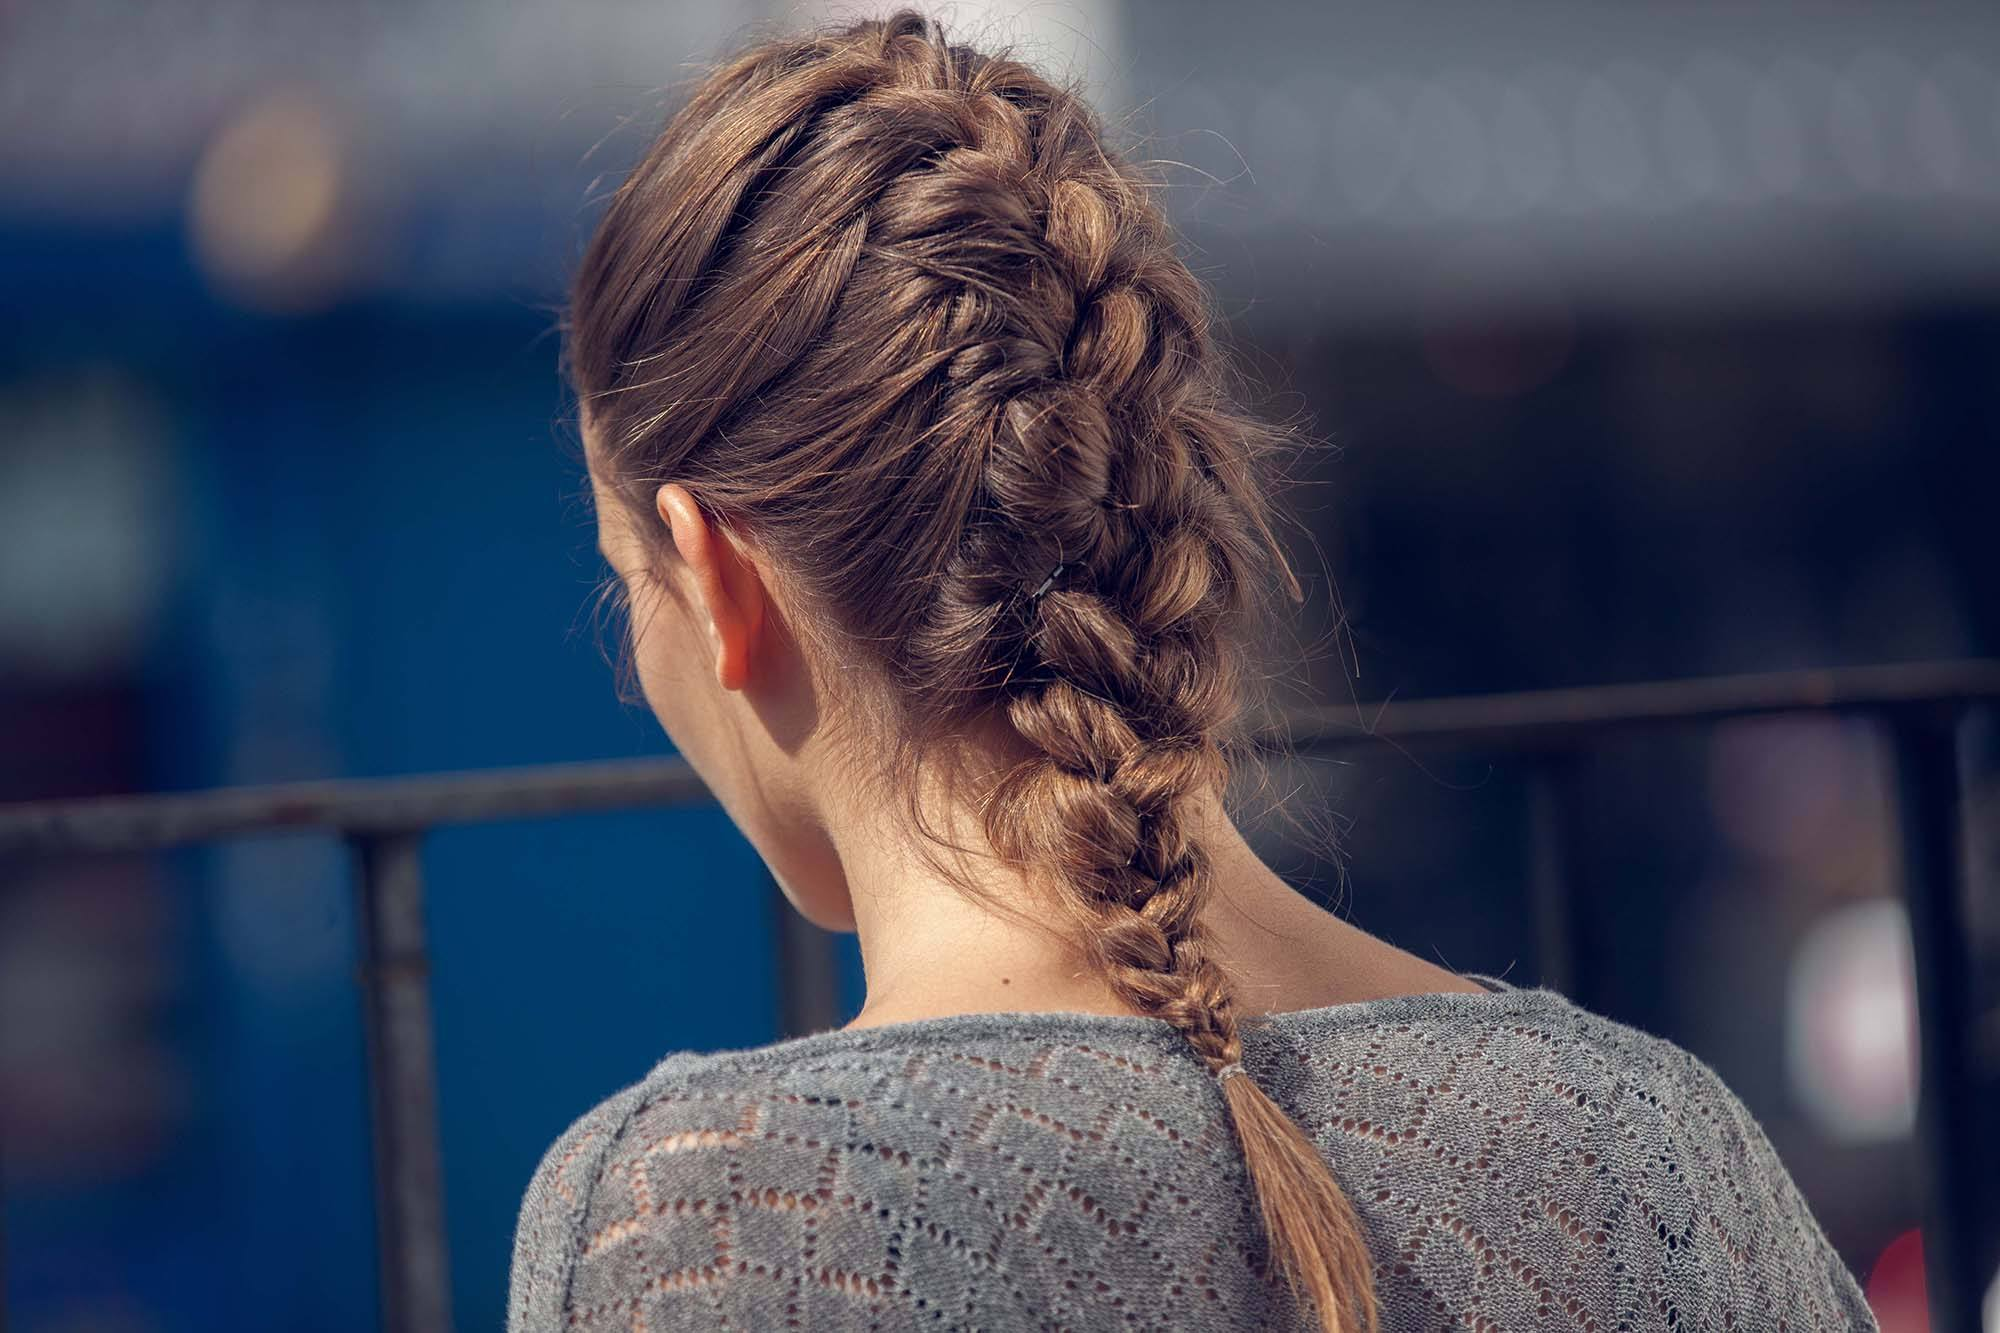 gym hairstyles for thick hair french braid on brunette hair